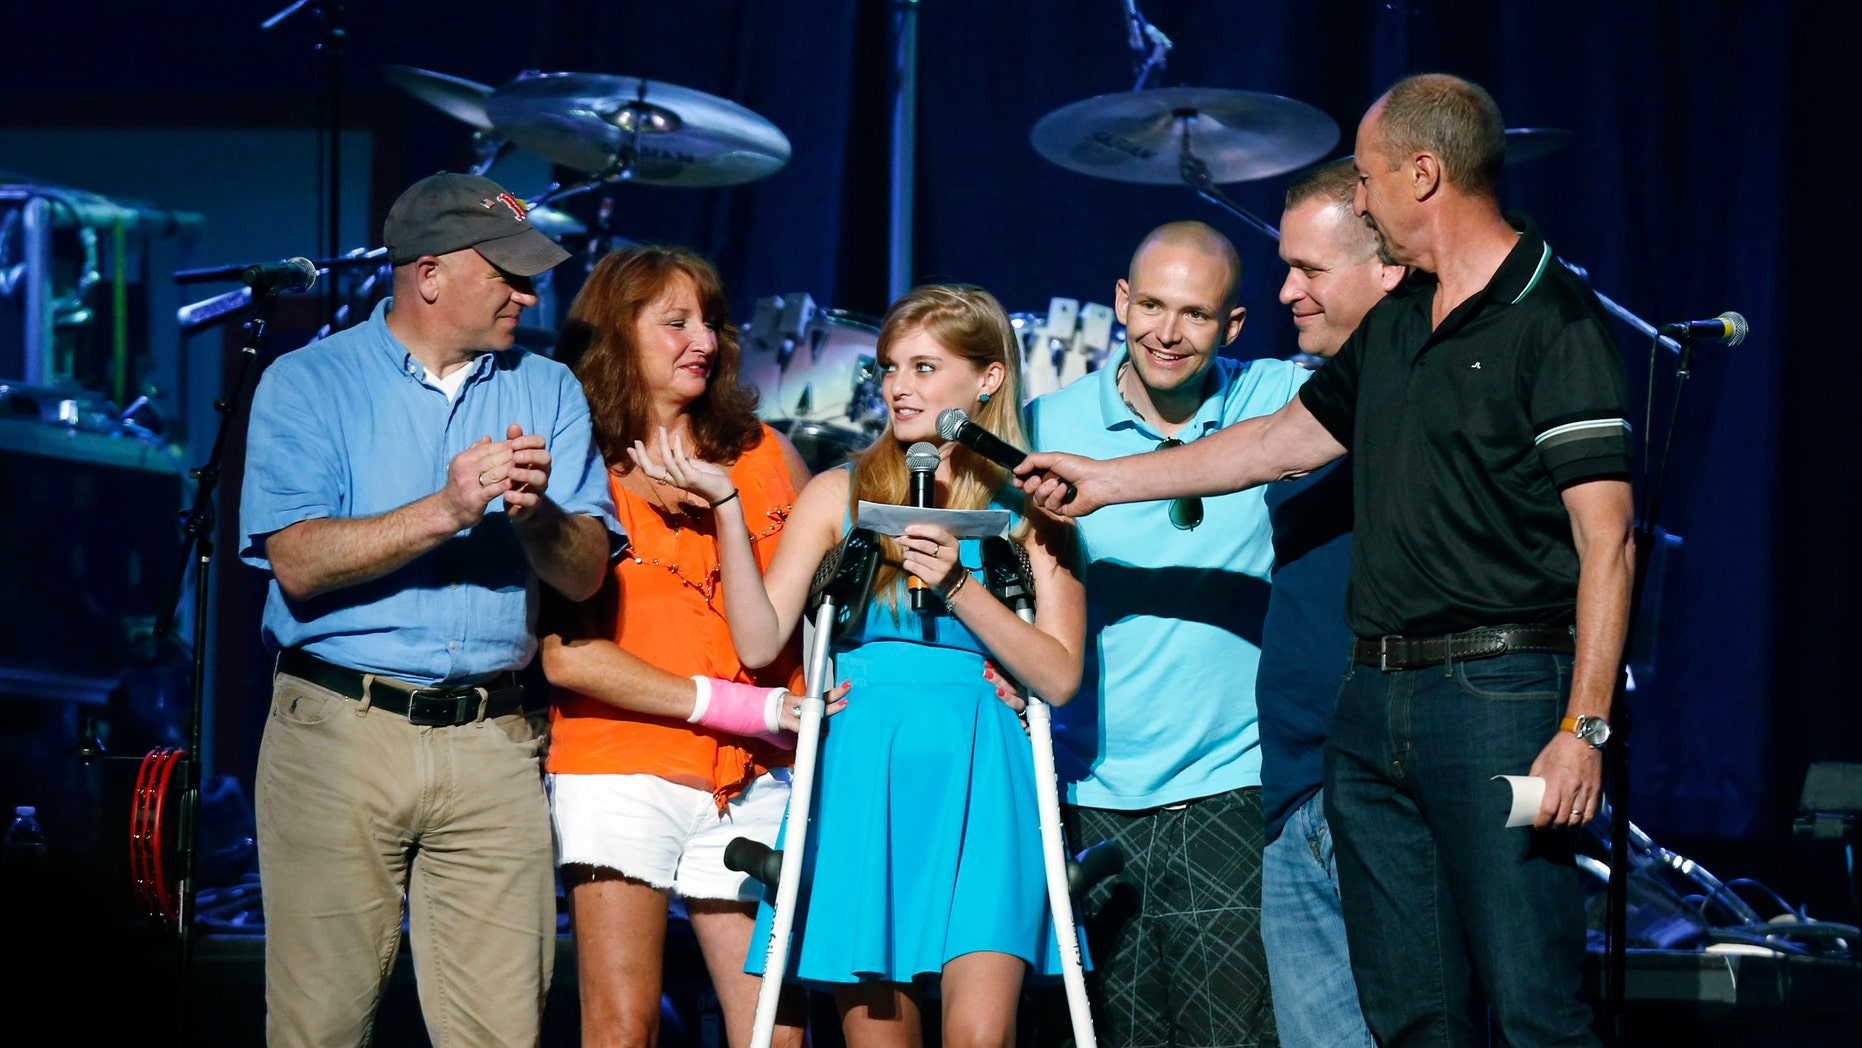 FILE - In this May 30, 2013 file photo, Boston Marathon bombing survivor Victoria McGrath, center, thanks people who helped her after she was injured in the bombing, during the Boston Strong Concert: An Evening of Support and Celebration at the TD Garden in Boston. A Northeastern University spokesman said Monday, March 7, 2016, that McGrath, originally from Westport, Conn., and another student were killed in a car accident in Dubai over the weekend while on a personal trip. (Photo by Bizuayehu Tesfaye/Invision/AP, File)